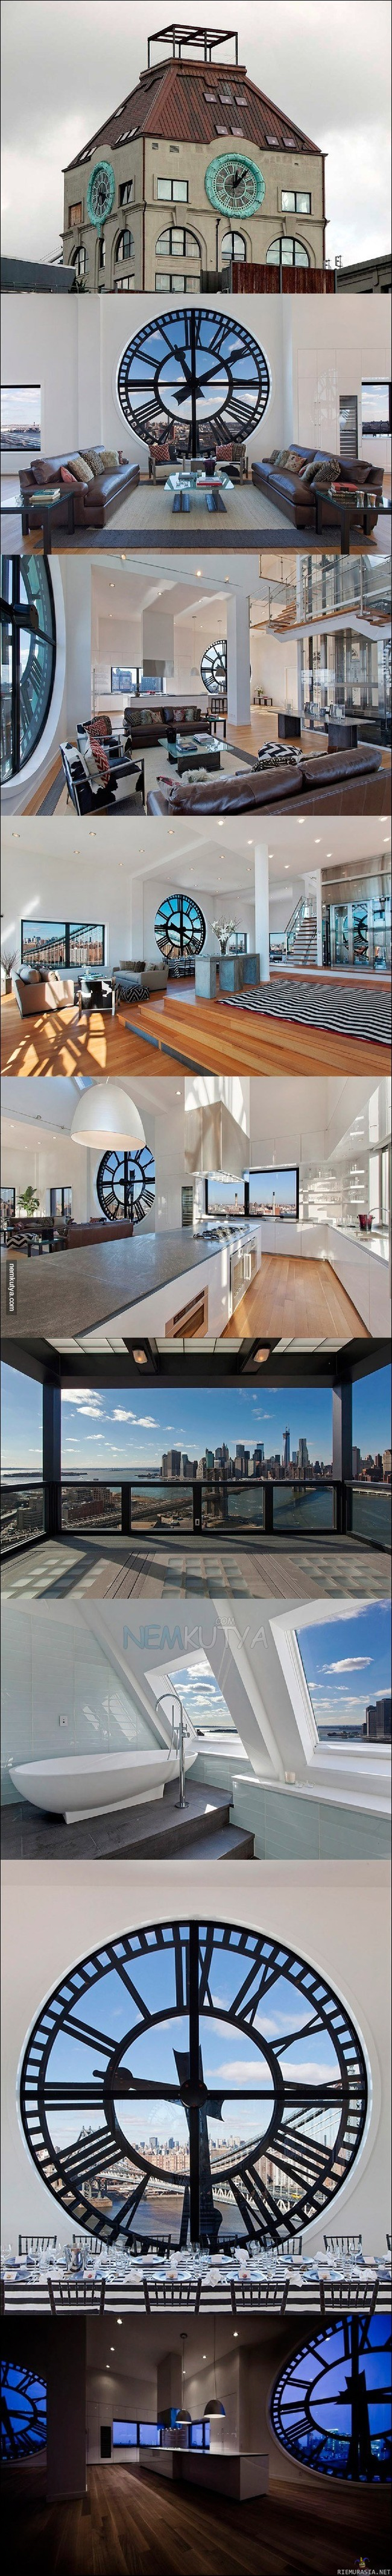 Insane penthouse in Brooklyn's clock tower for $18M. Maybe someday it's mine? :D